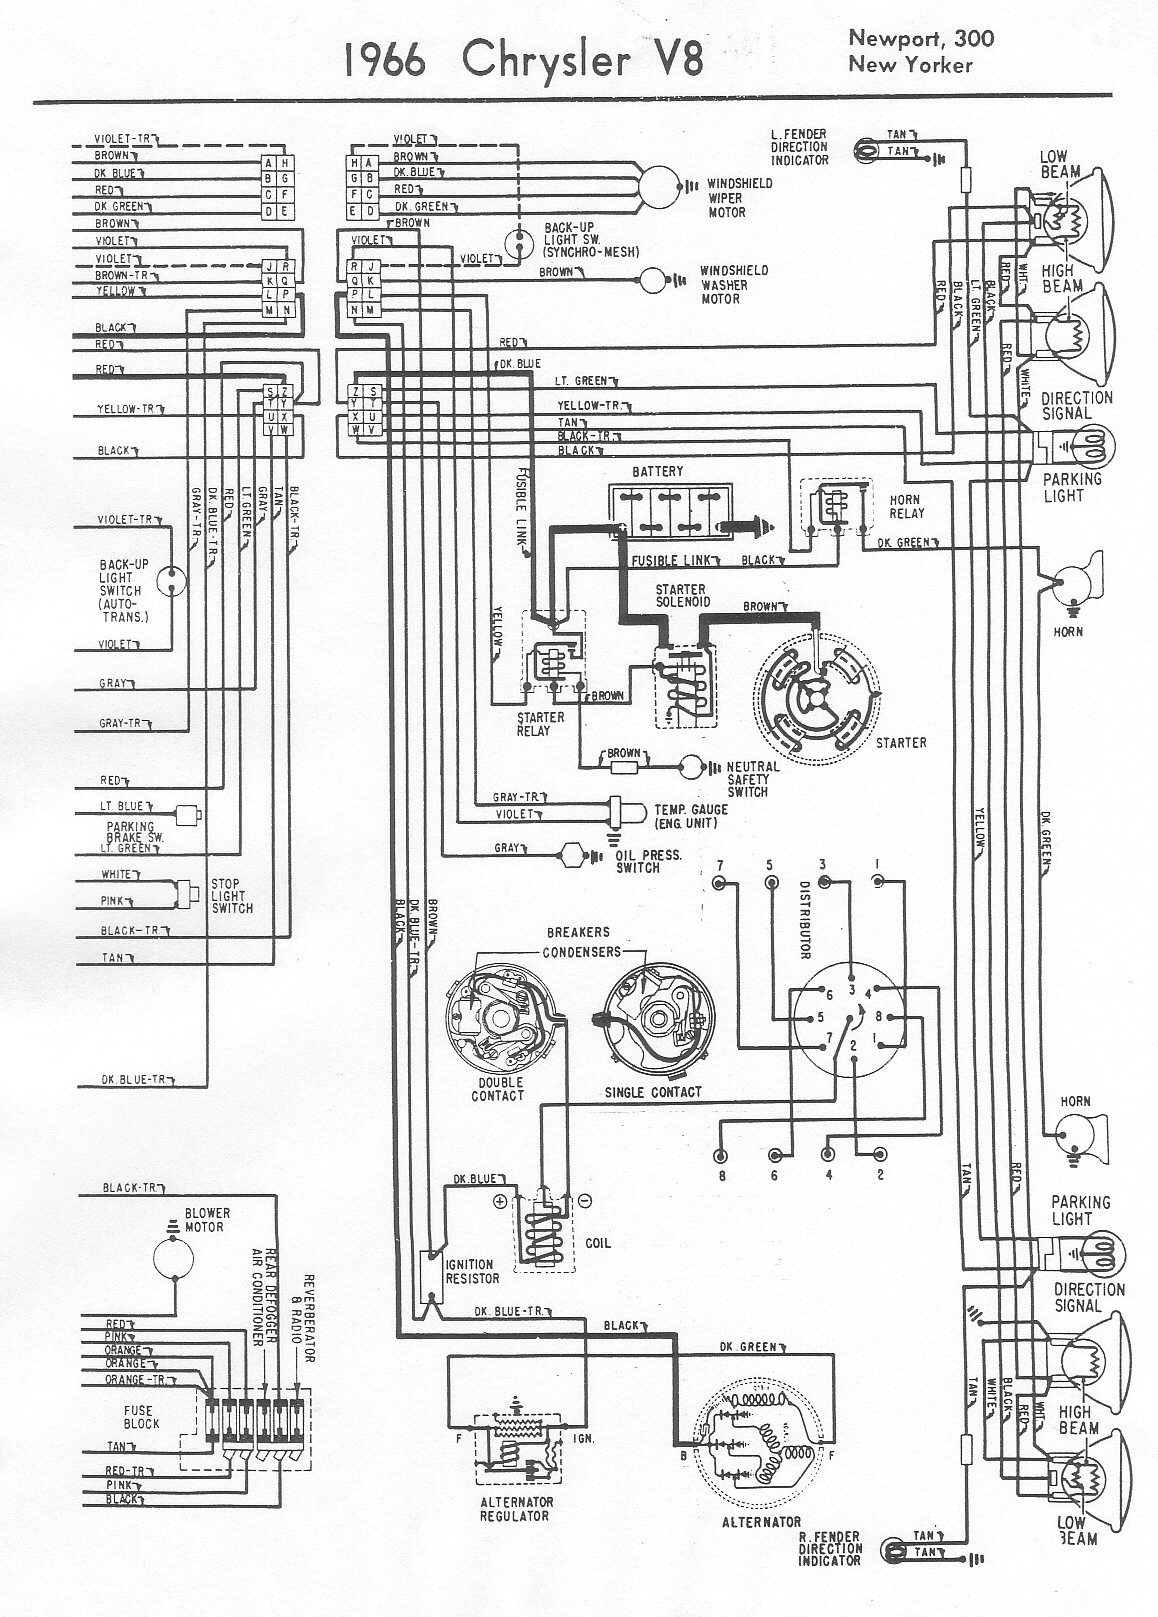 1965 chrysler new yorker wiring diagram 1965 chrysler boat